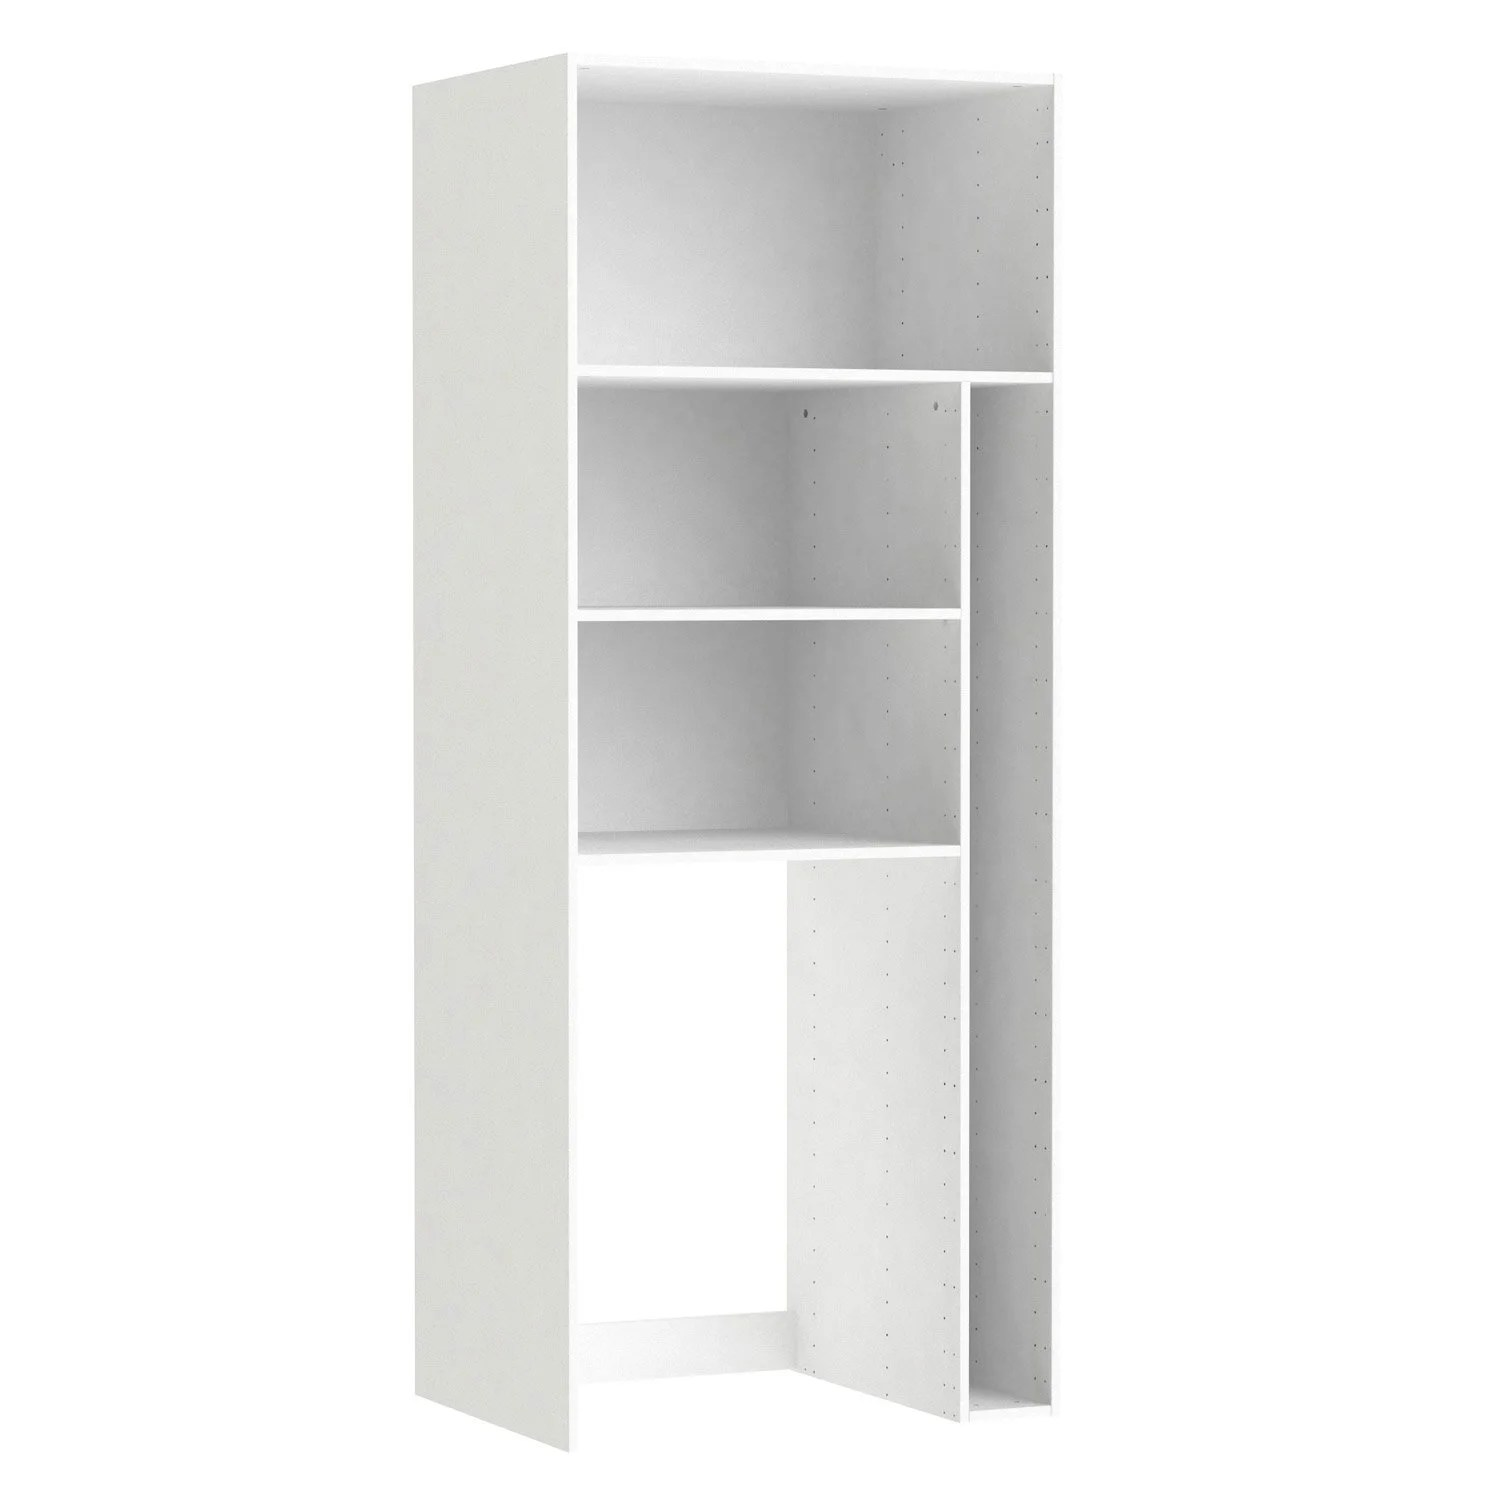 Armoire Cellier Caisson Buanderie Spaceo Home 200 X 80 X 60 Cm Blanc